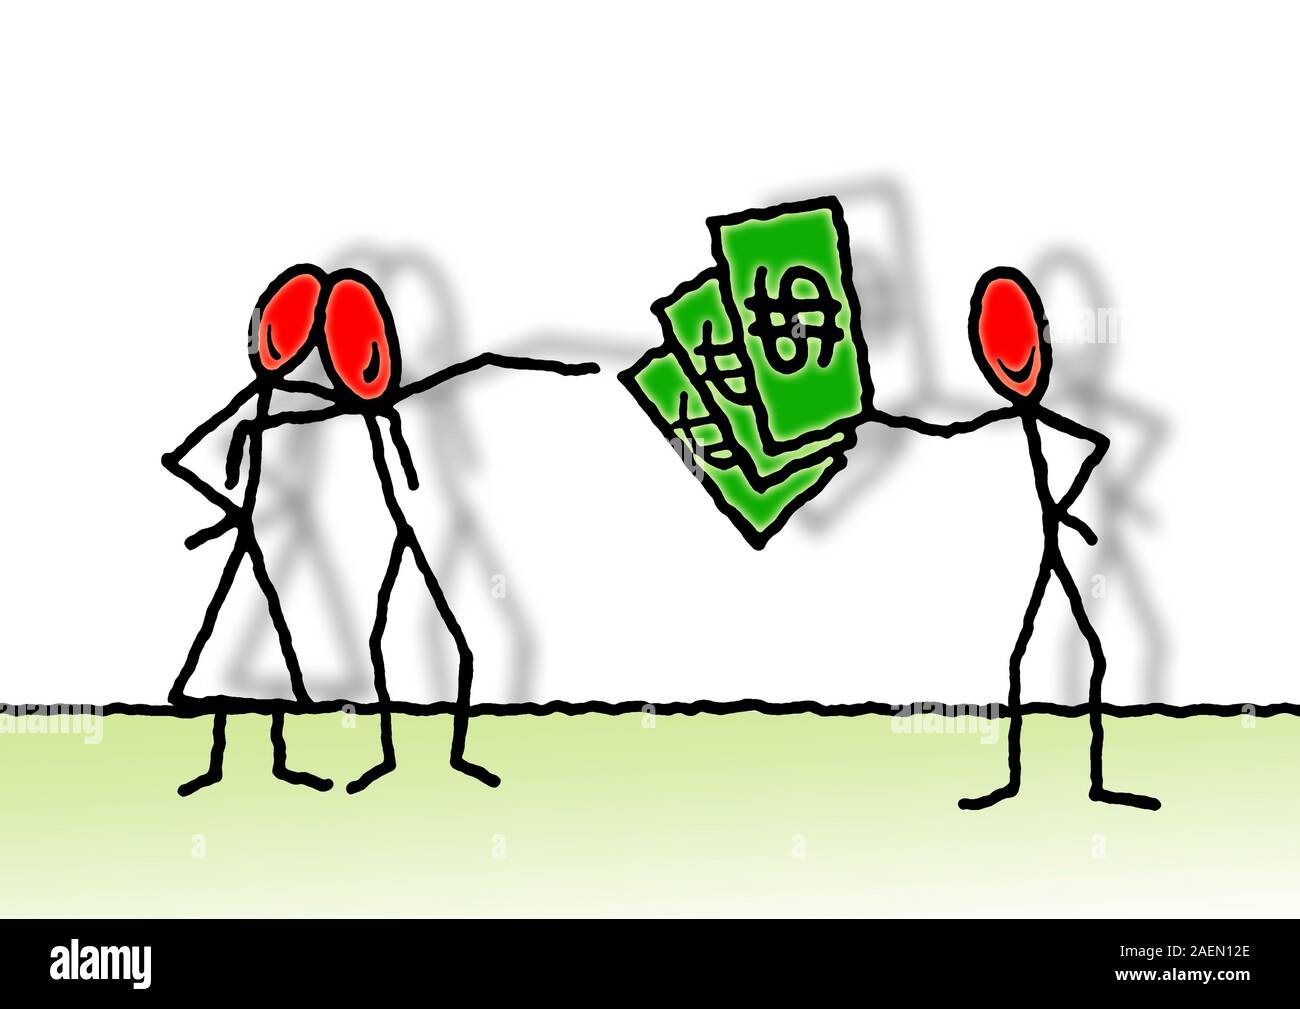 Loan of money between private individuals - concept image with illustration drawn by freehand Stock Photo